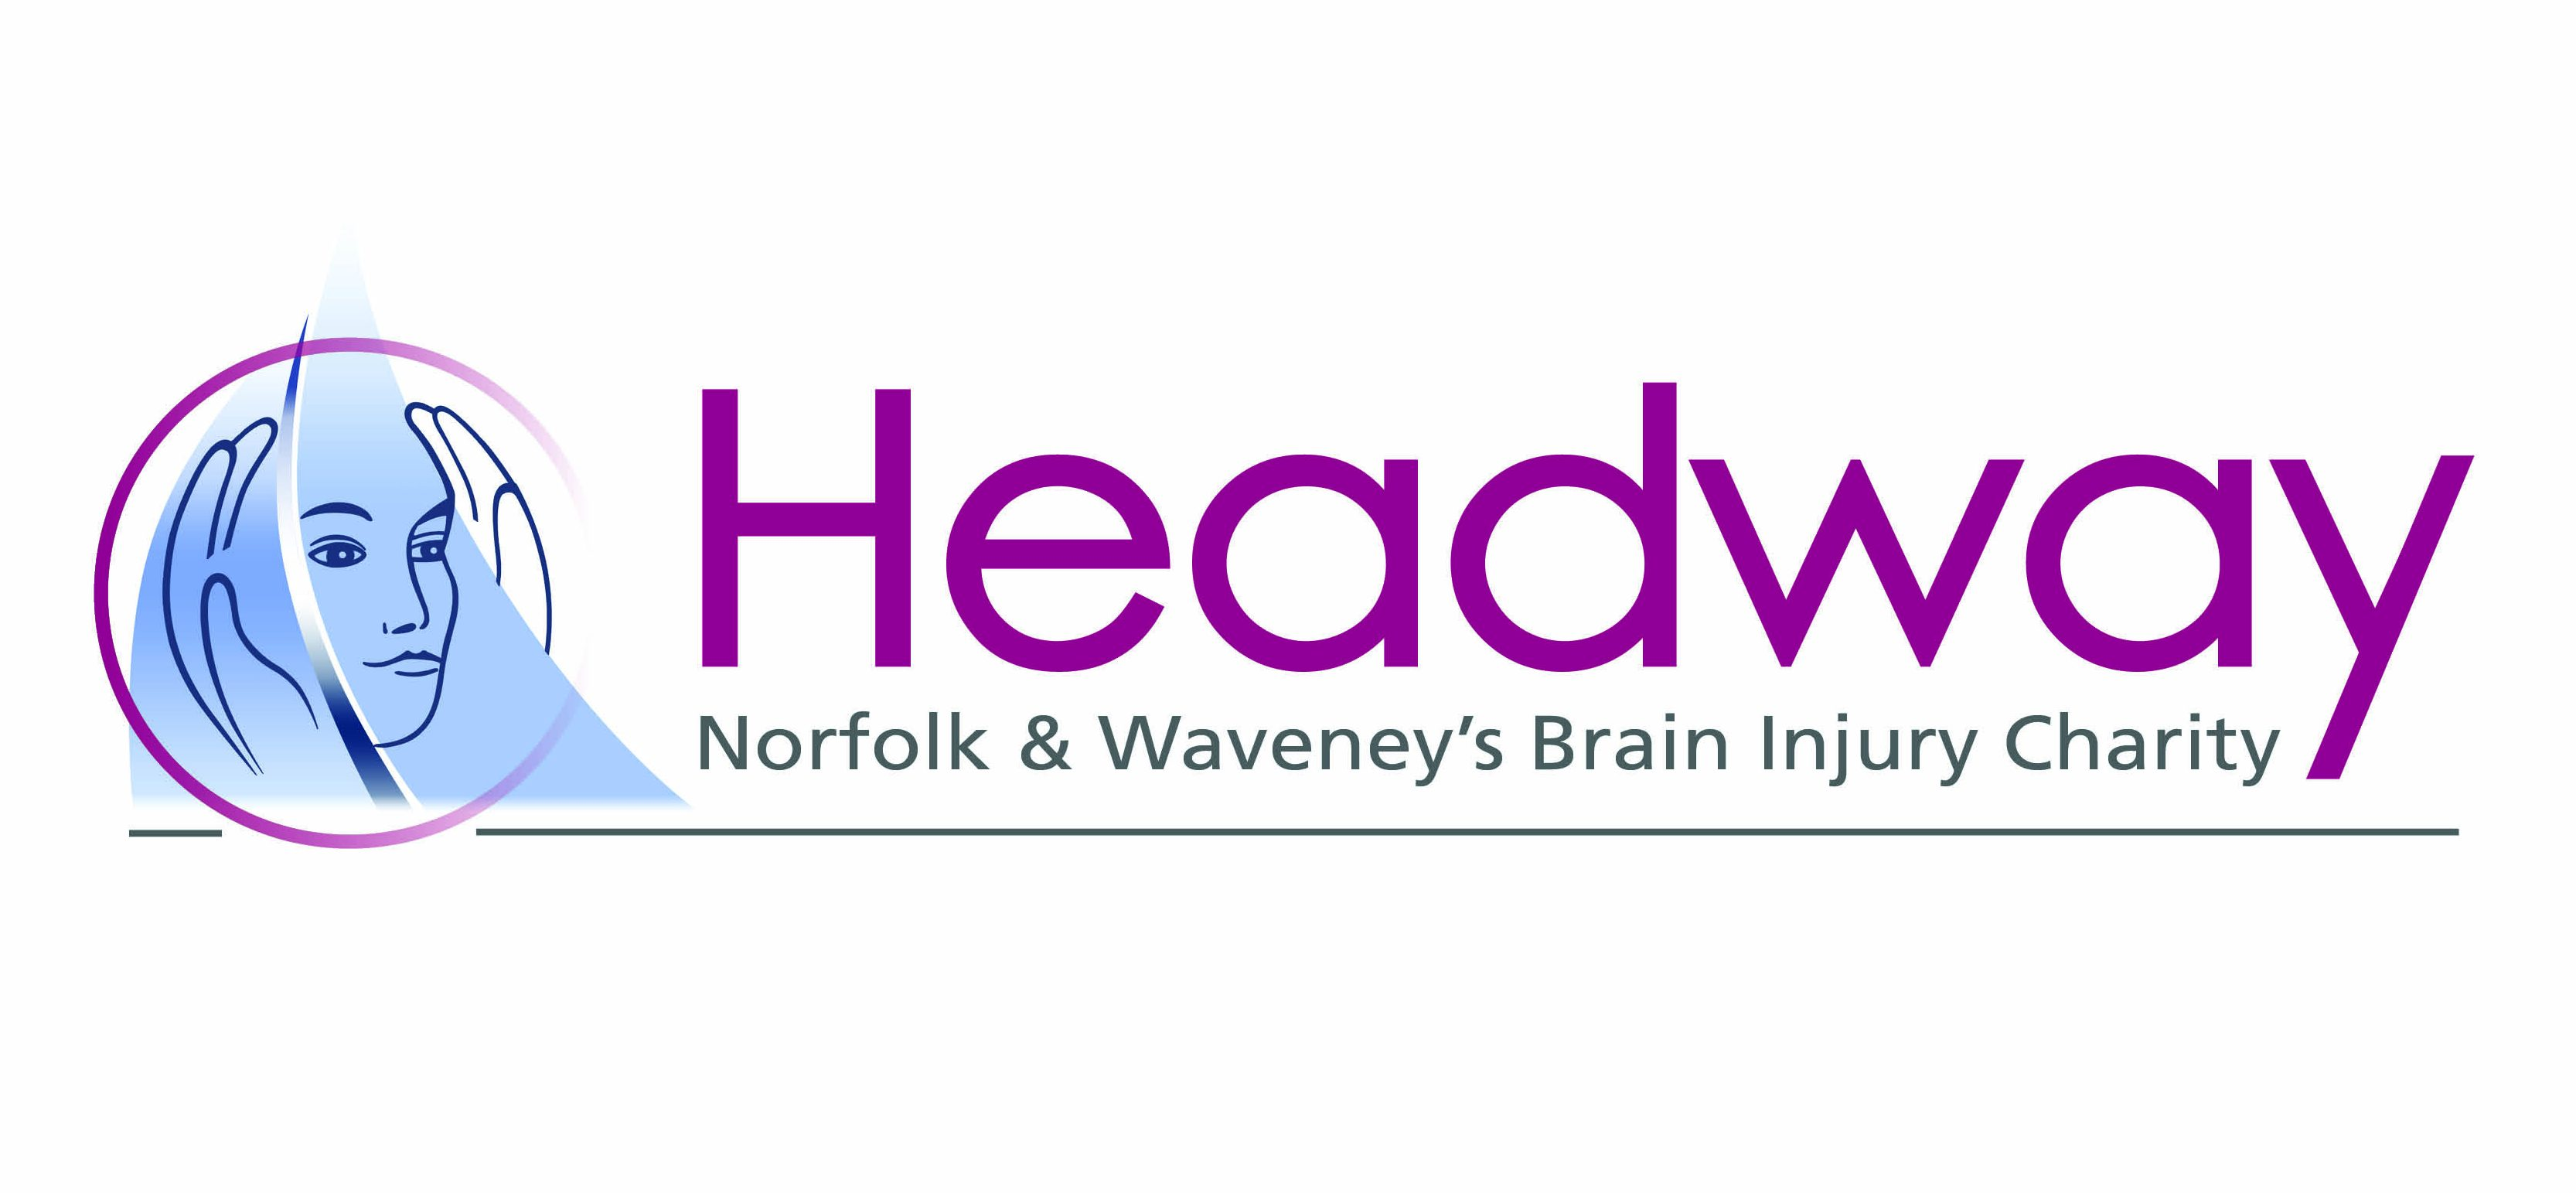 Link to https://headway-nw.org.uk/home/